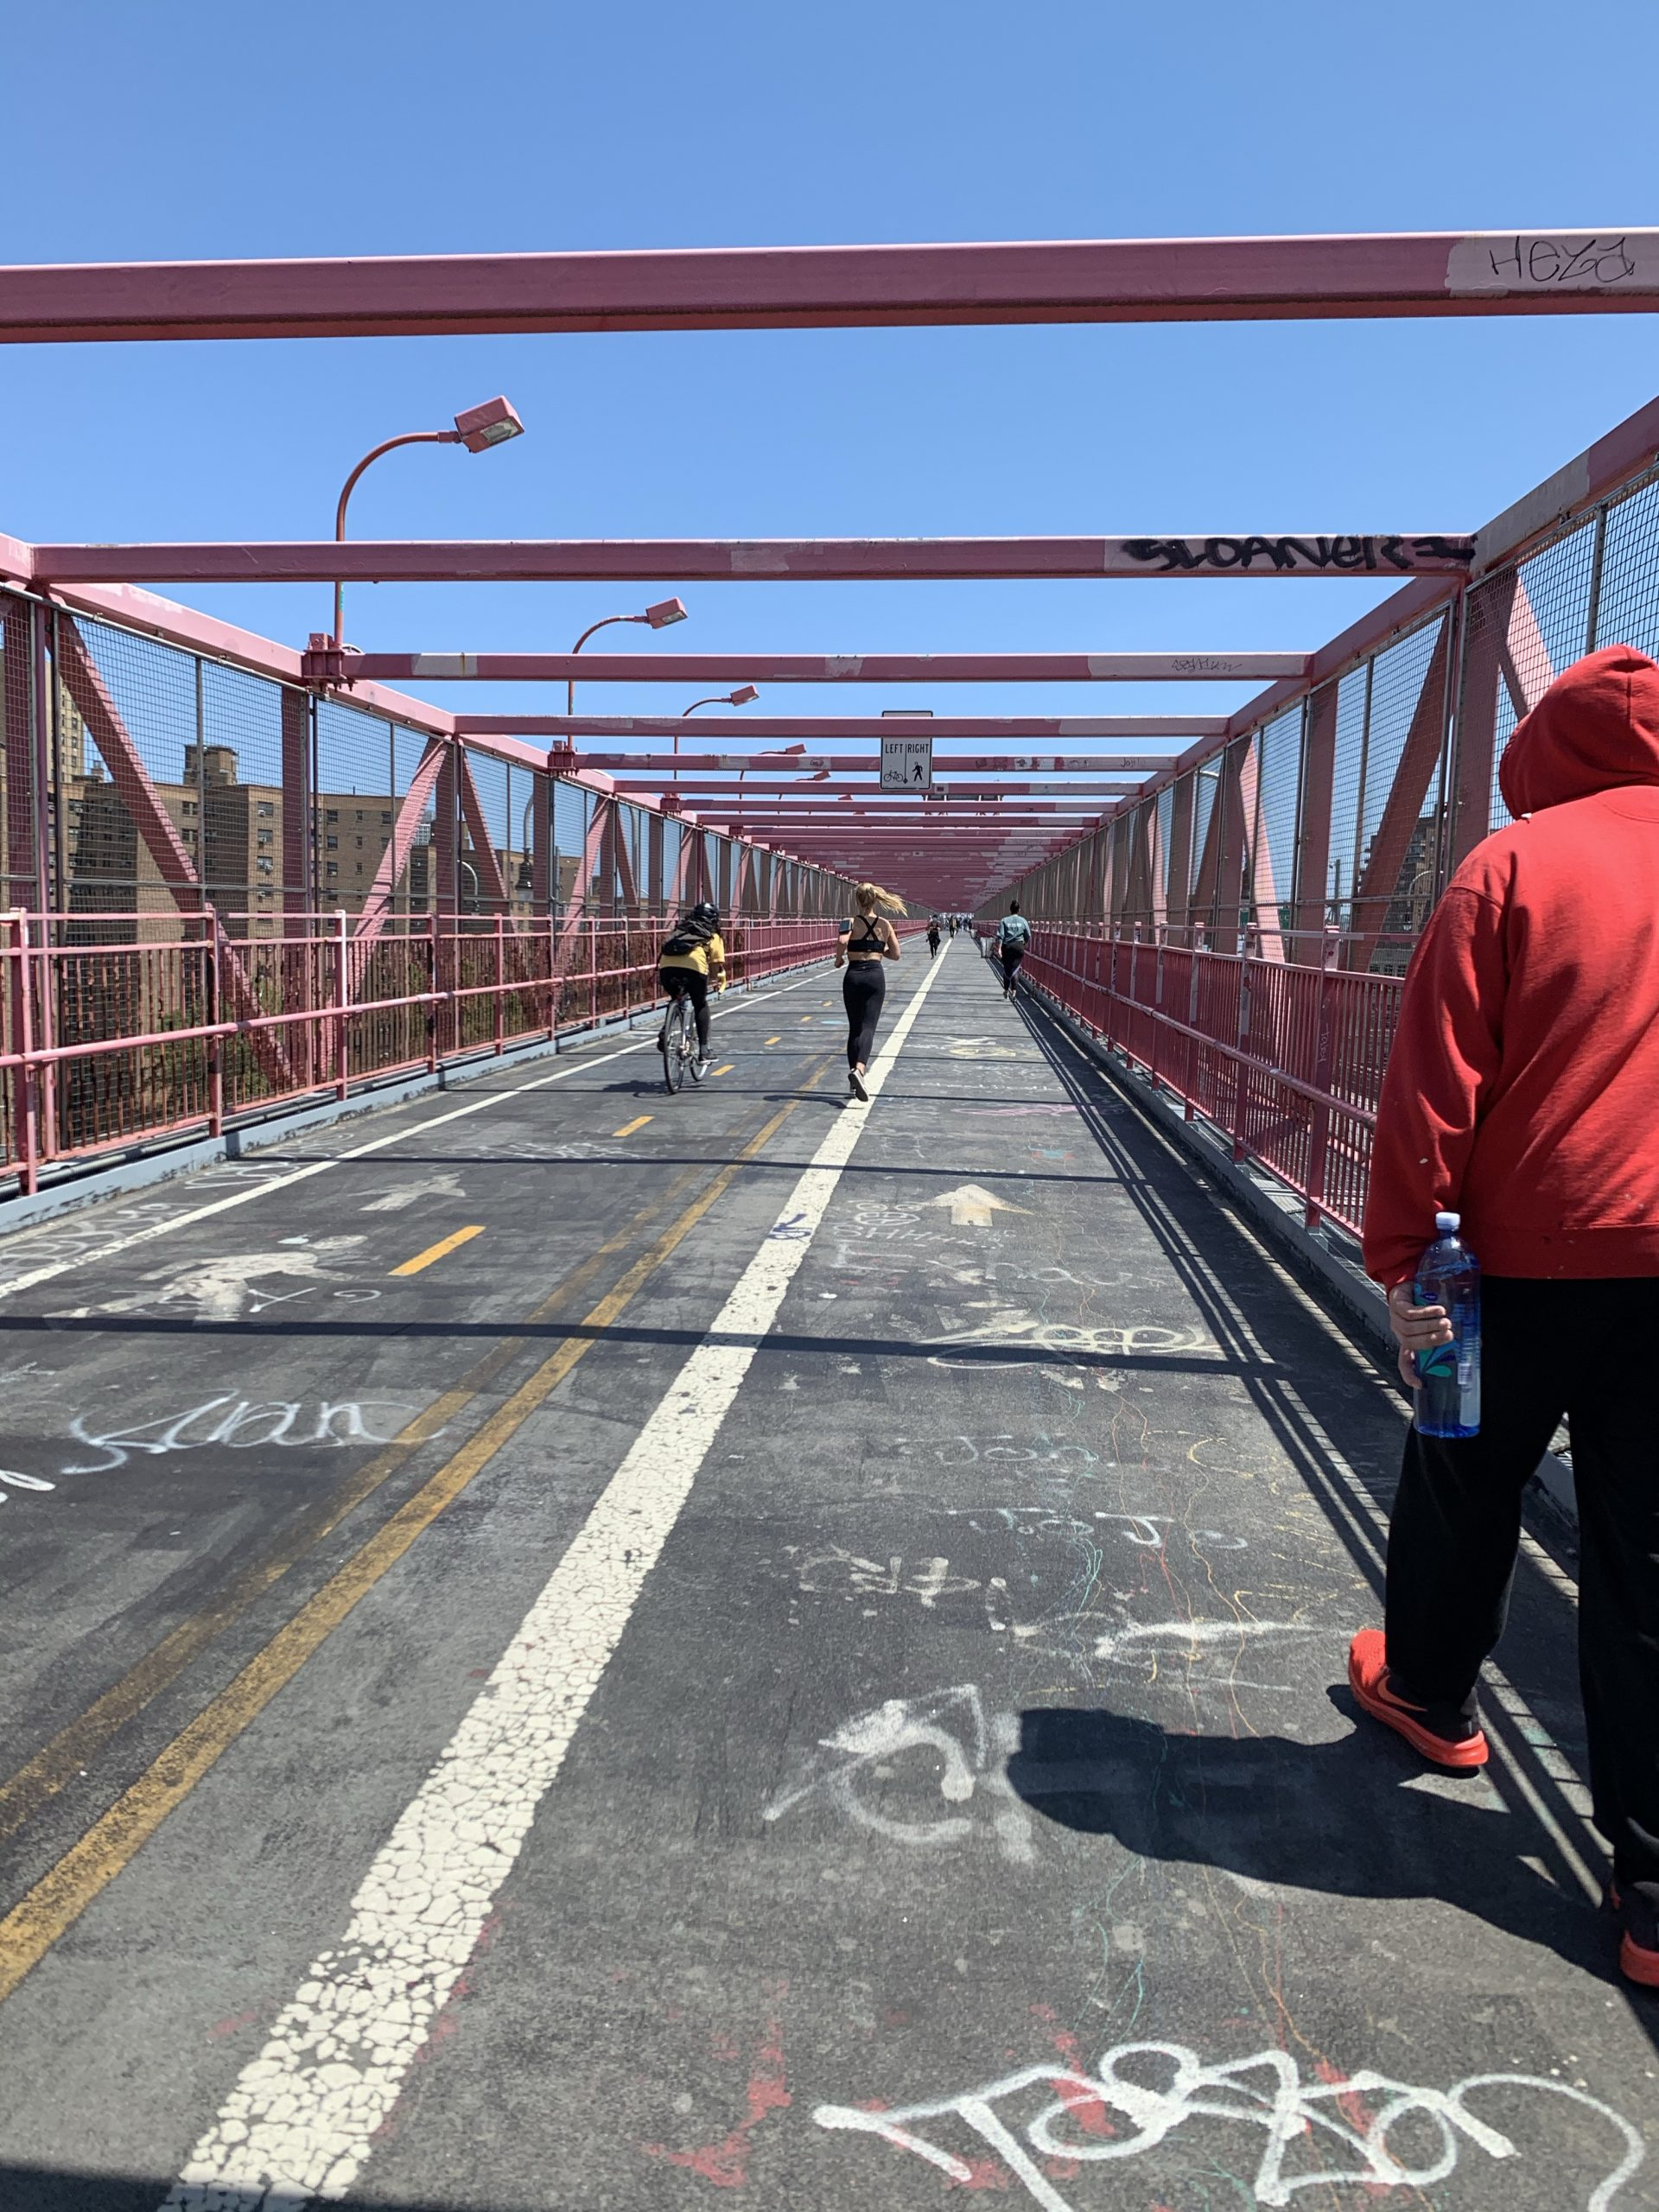 Walking portion of the Williamsburg Bridge